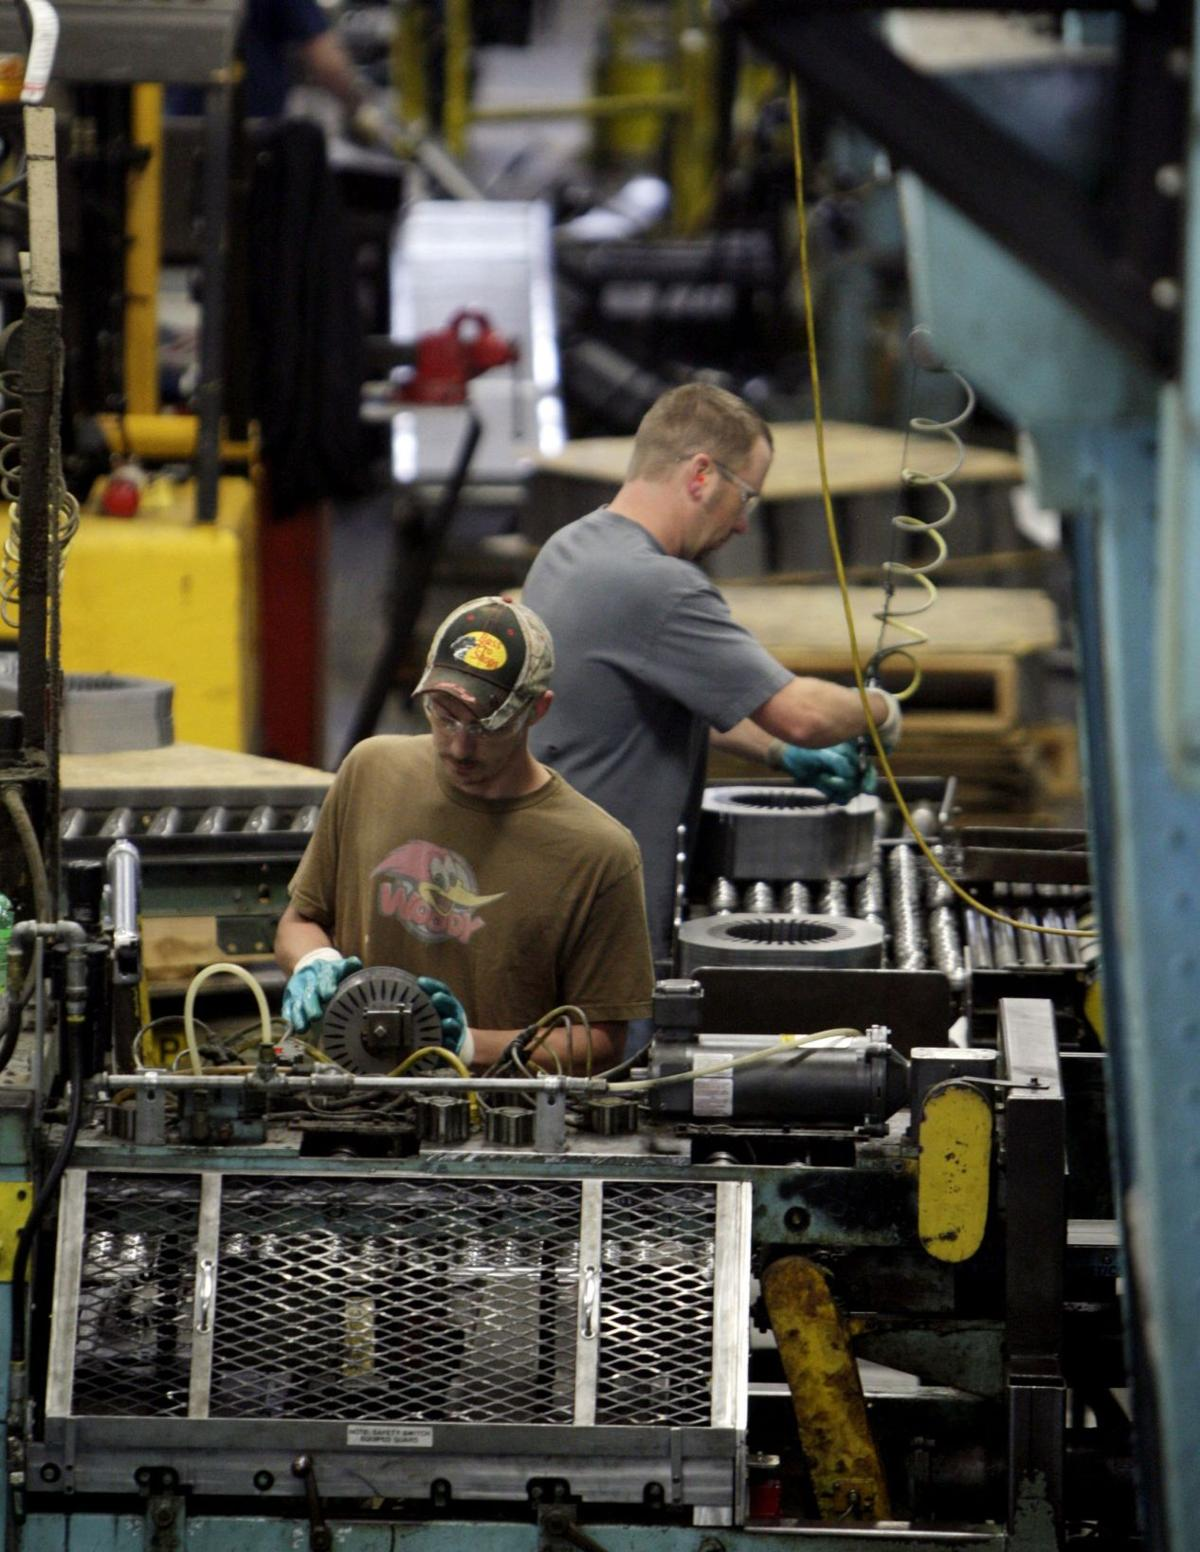 U.S. economy set for rebound after 1Q contraction